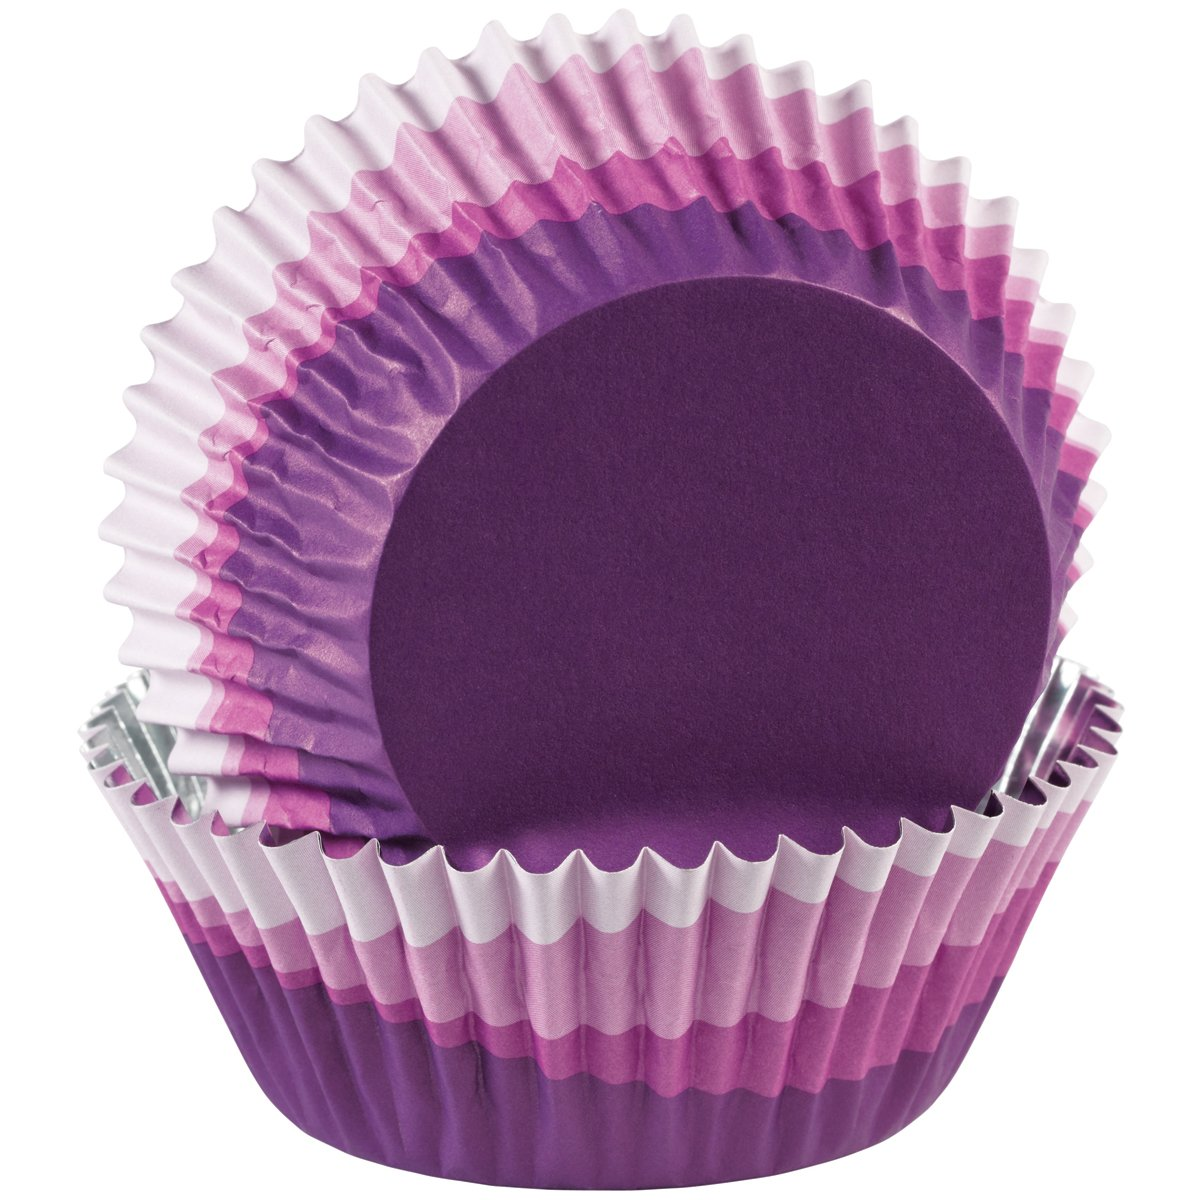 Wilton ColorCup Standard Baking Cups, Purple Ombre, 36-Pack Notions - In Network 415-0632